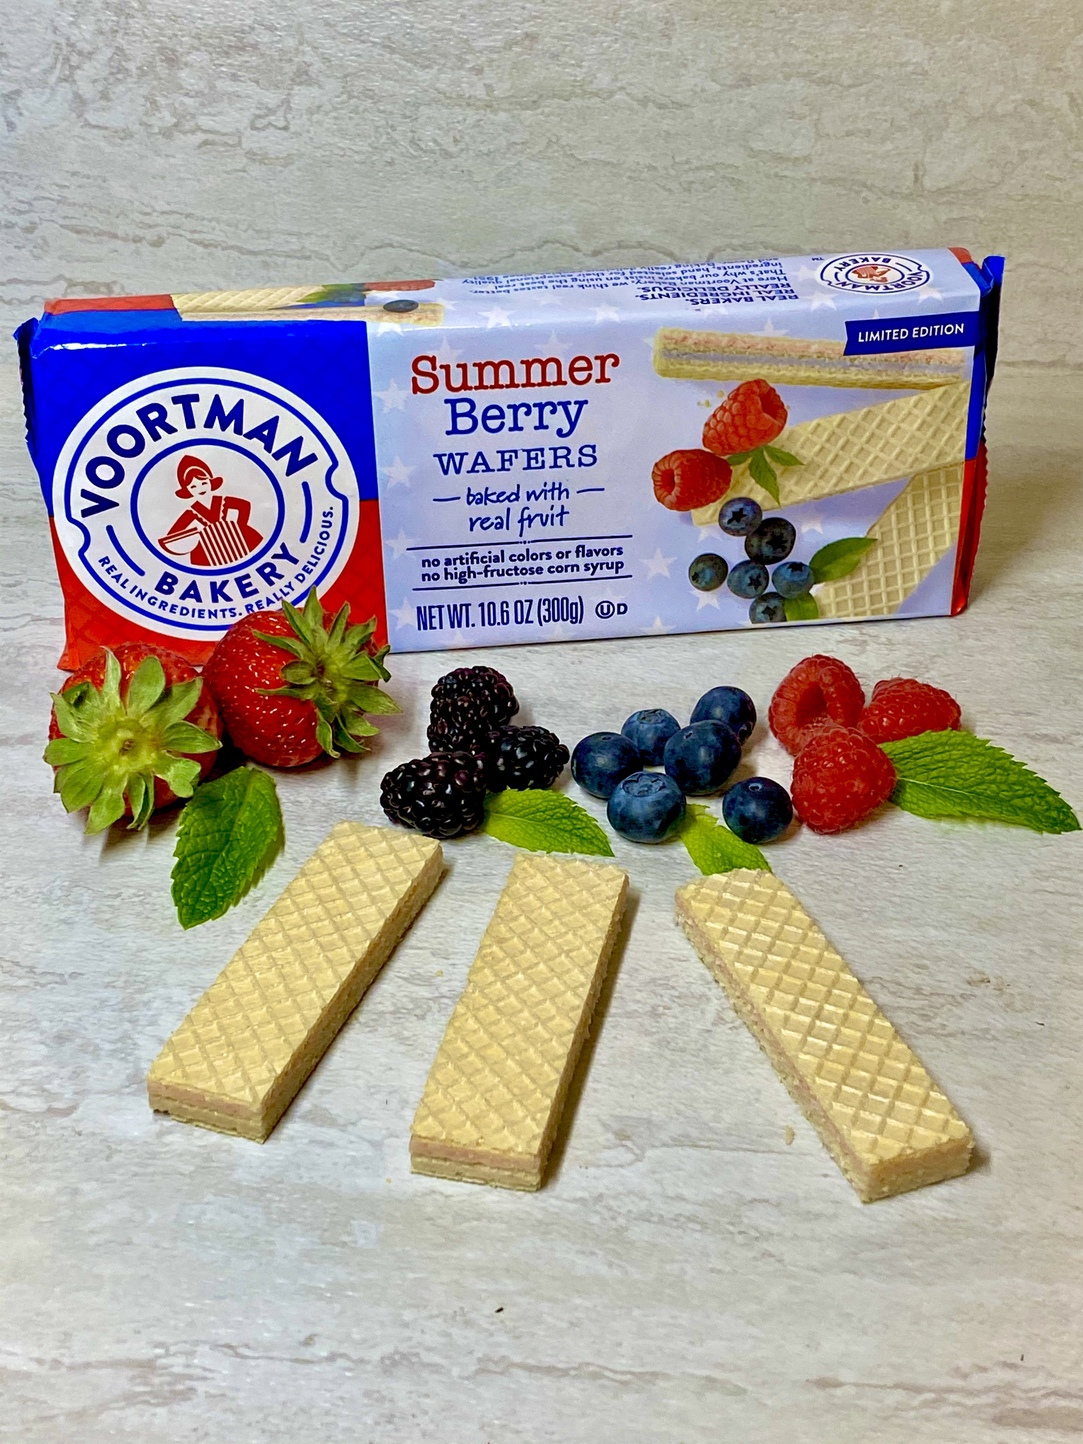 Voortman Bakery Summer Berry Wafers